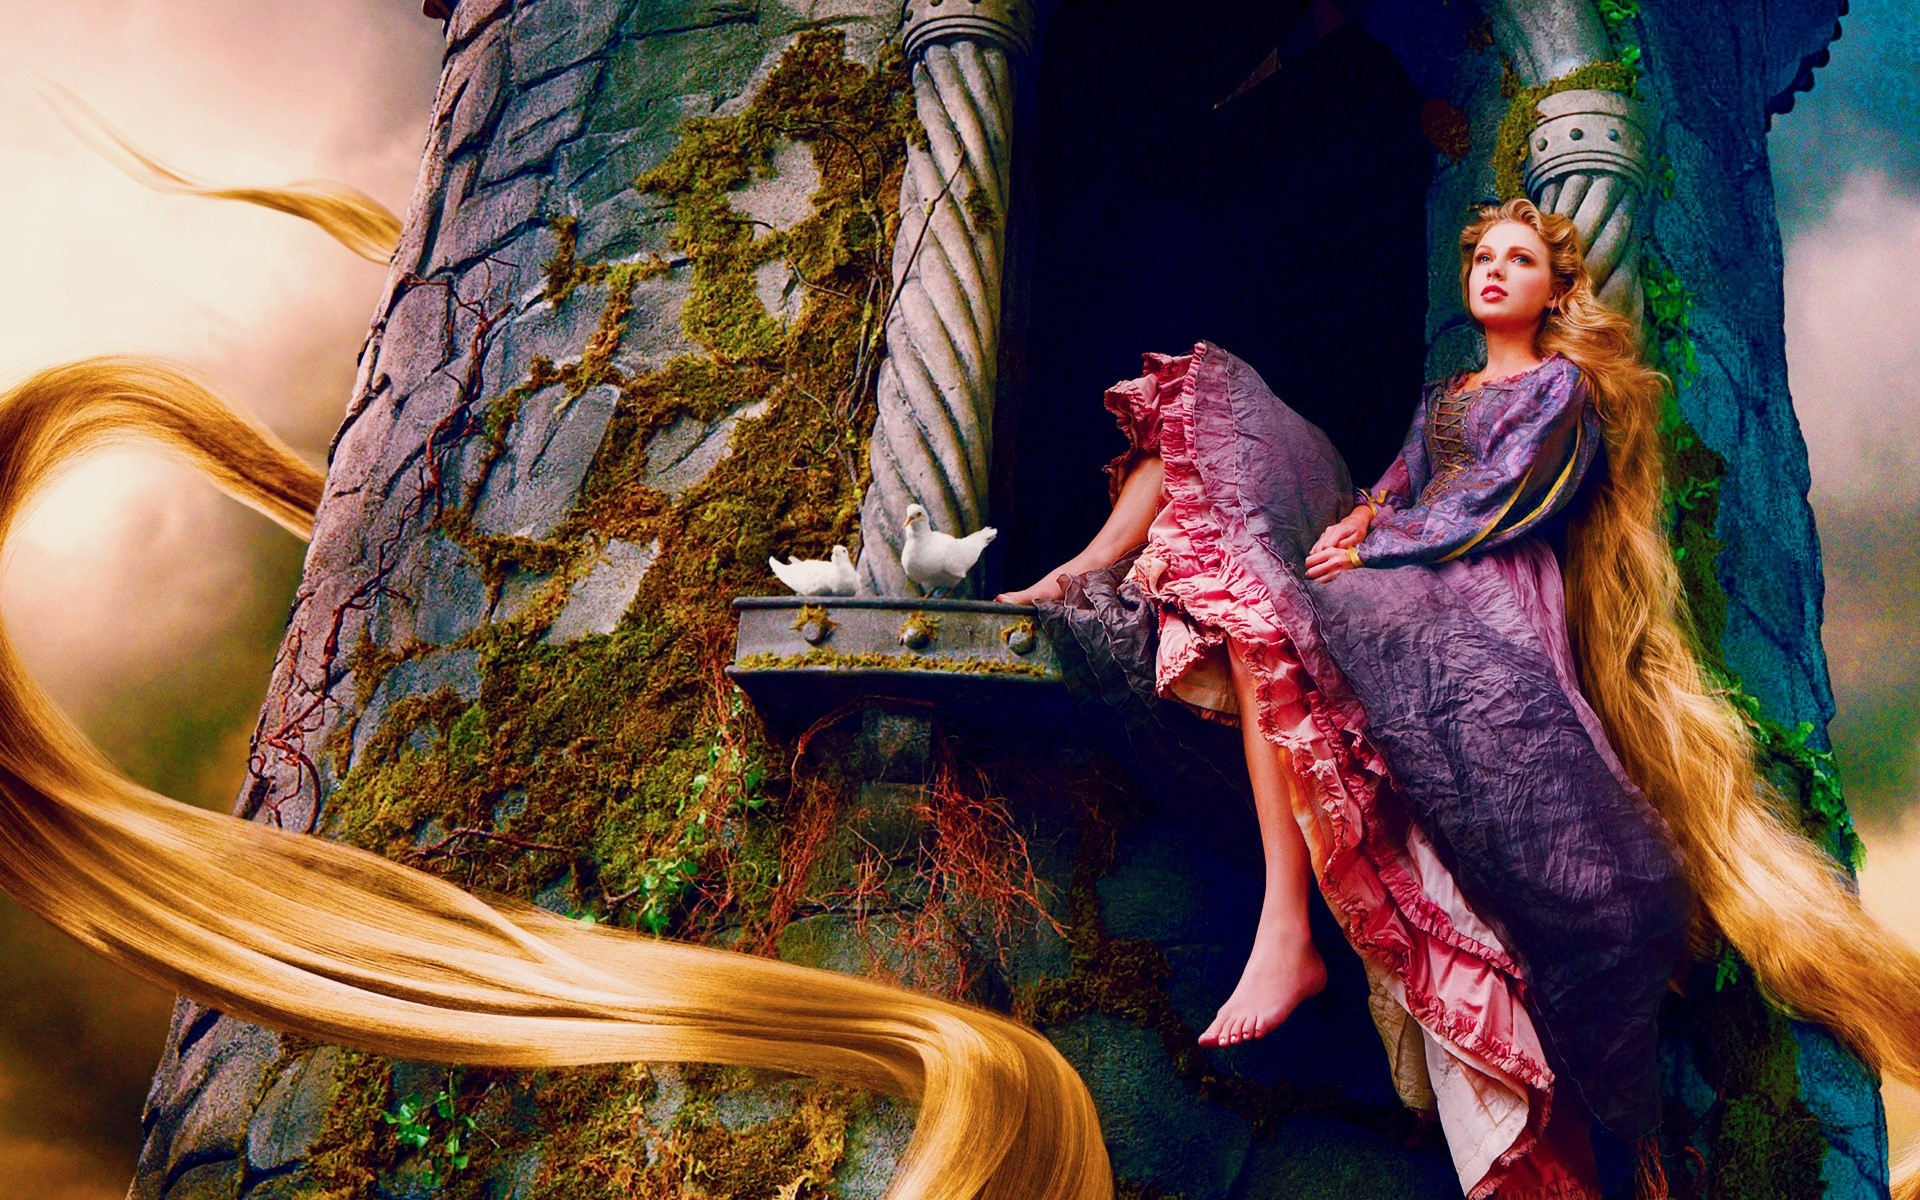 Wallpaper Taylor swift as Rapunzel